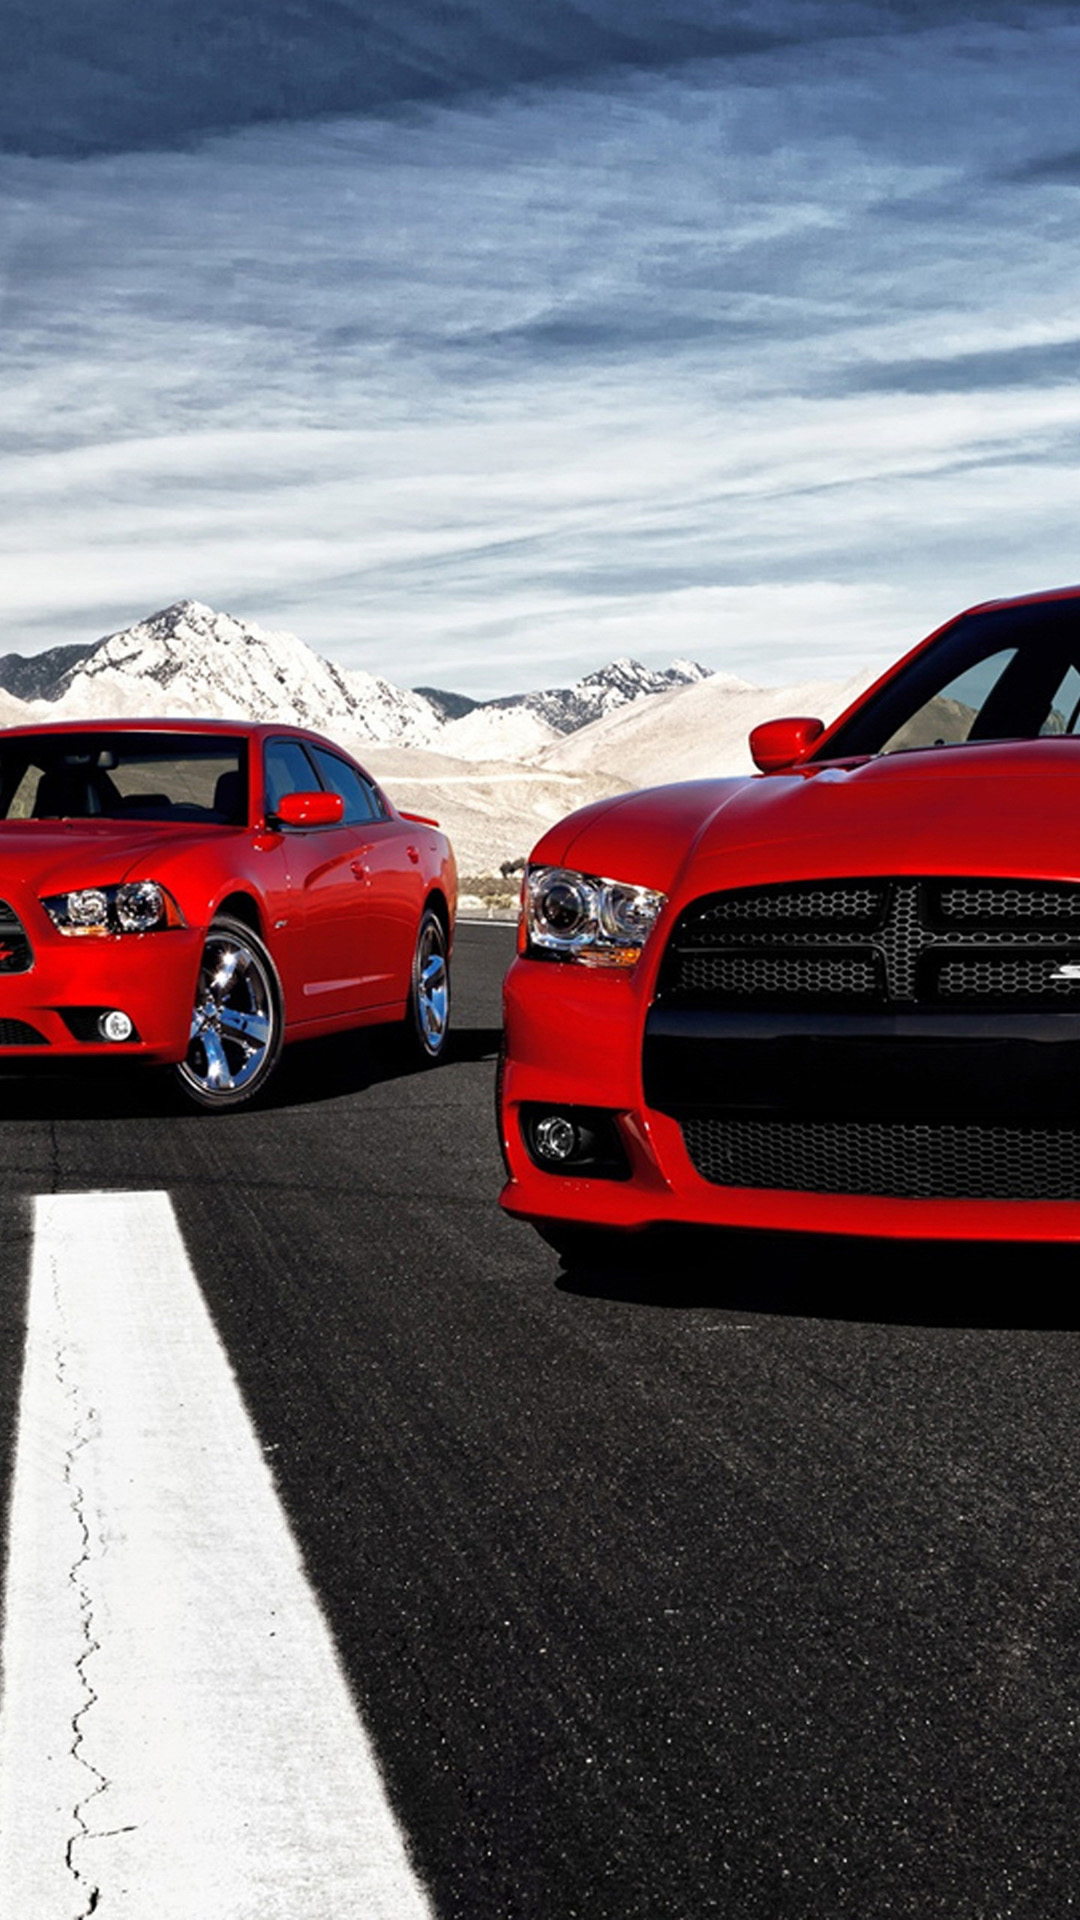 Dodge Charger Hd Wallpaper Iphone 6 Plus